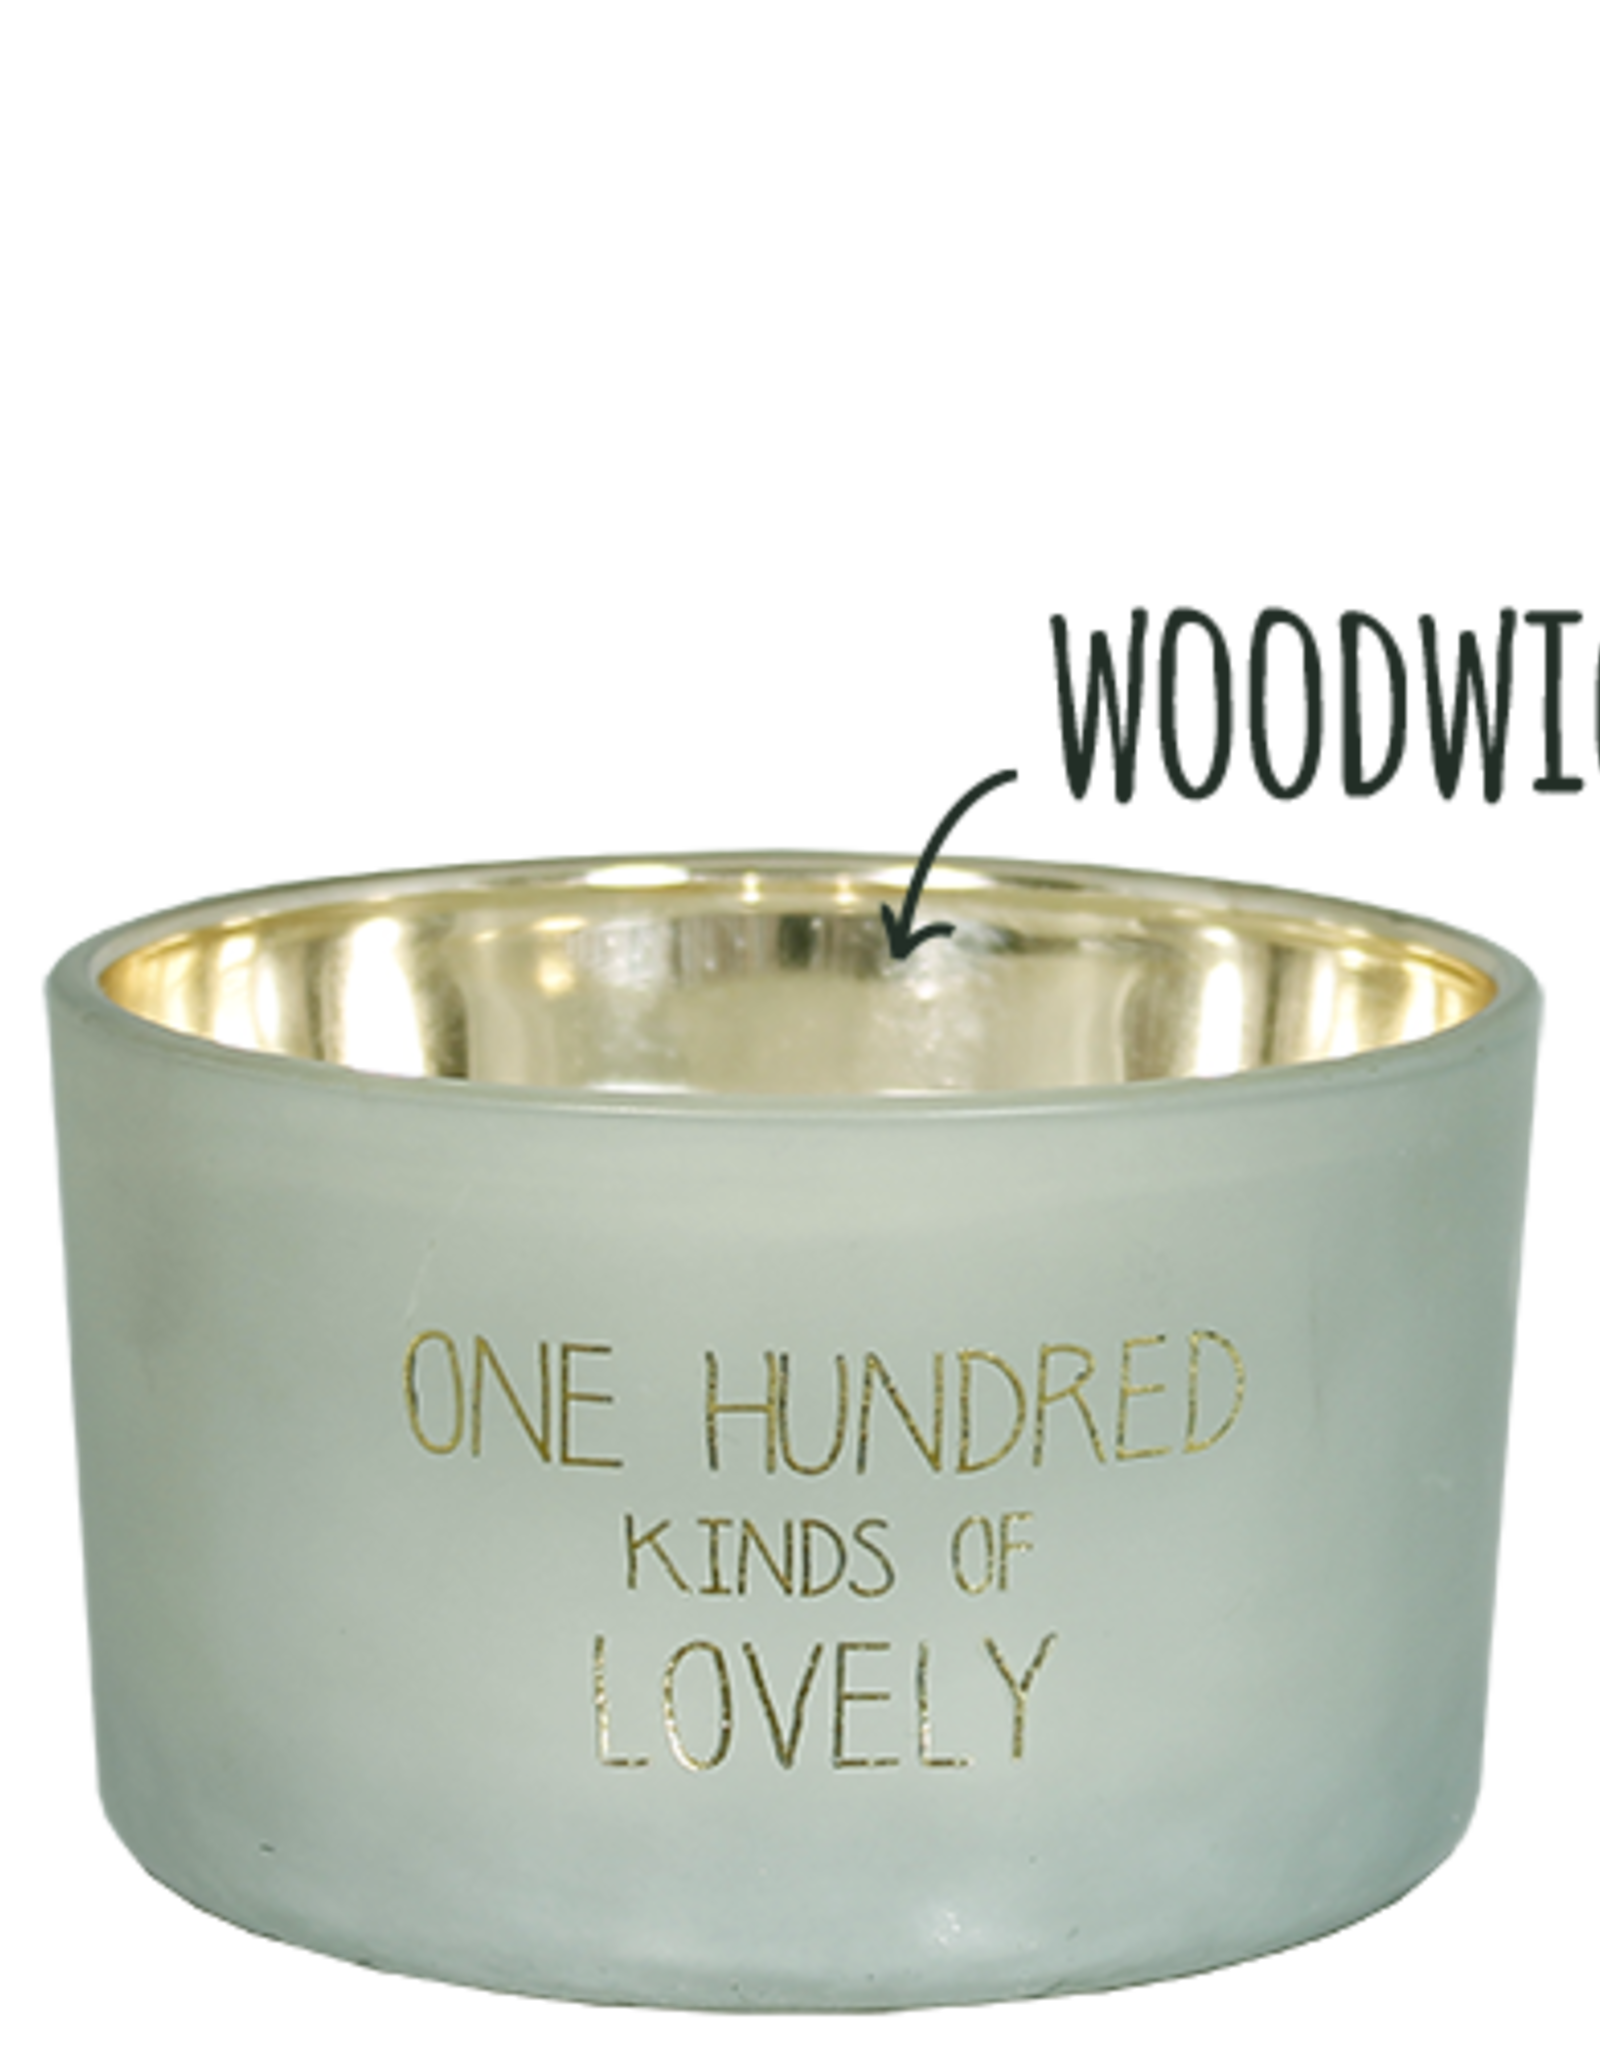 My flame Lifestyle Sojakaars | houten lont  | 100 Kinds of Lovely |  Geur : Minty Bamboo